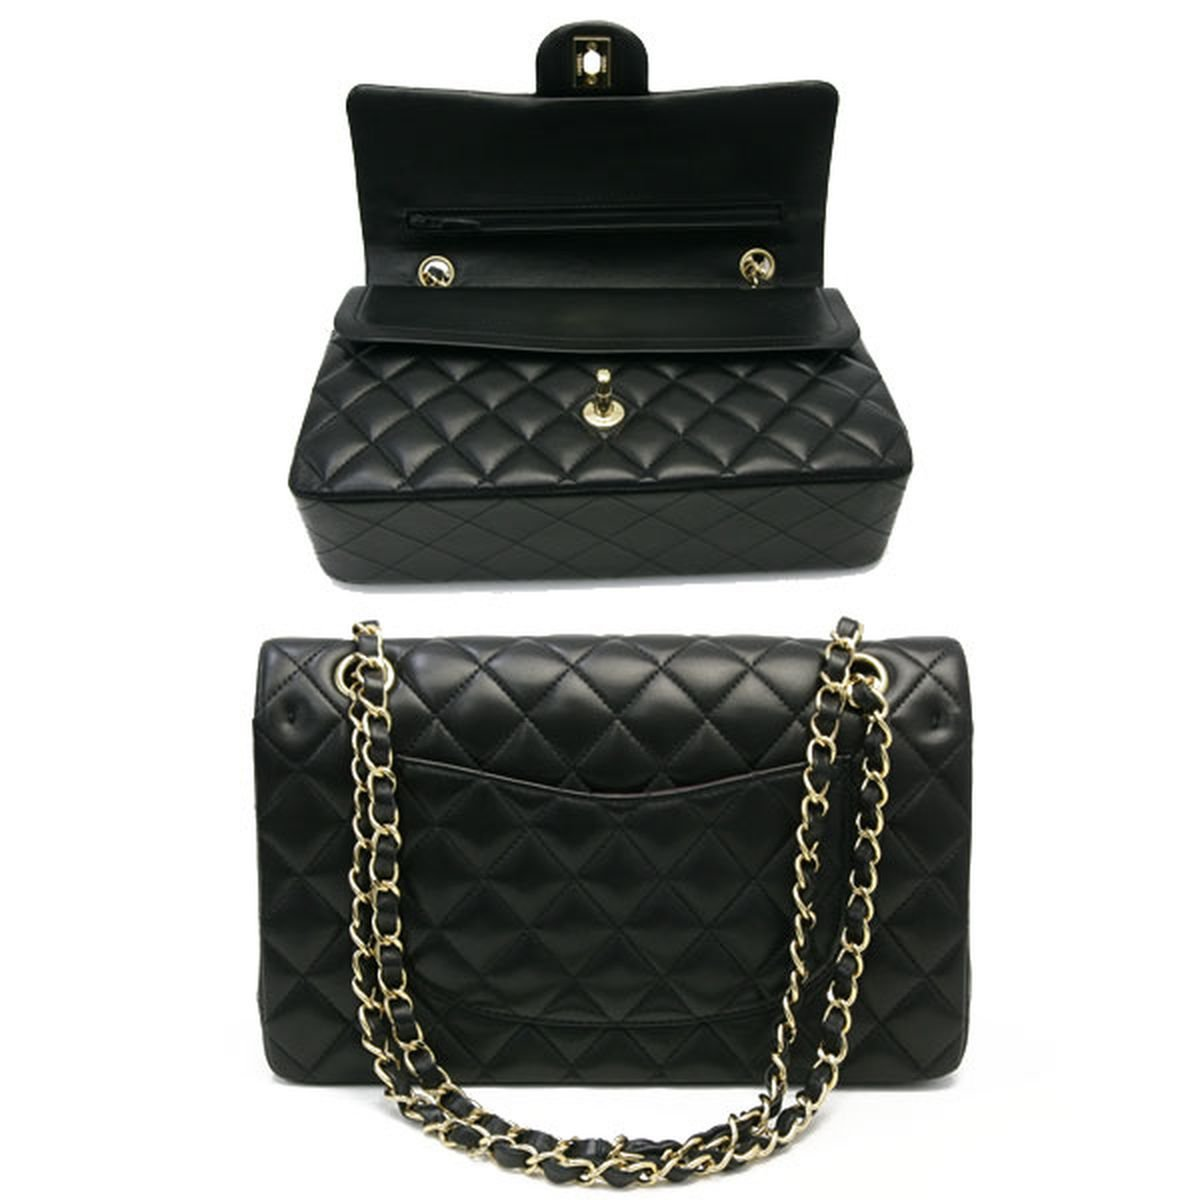 b0f3c58efee Amazon.com  CHANEL Lambskin Classic Flap Bag with Gold Chain  Shoes